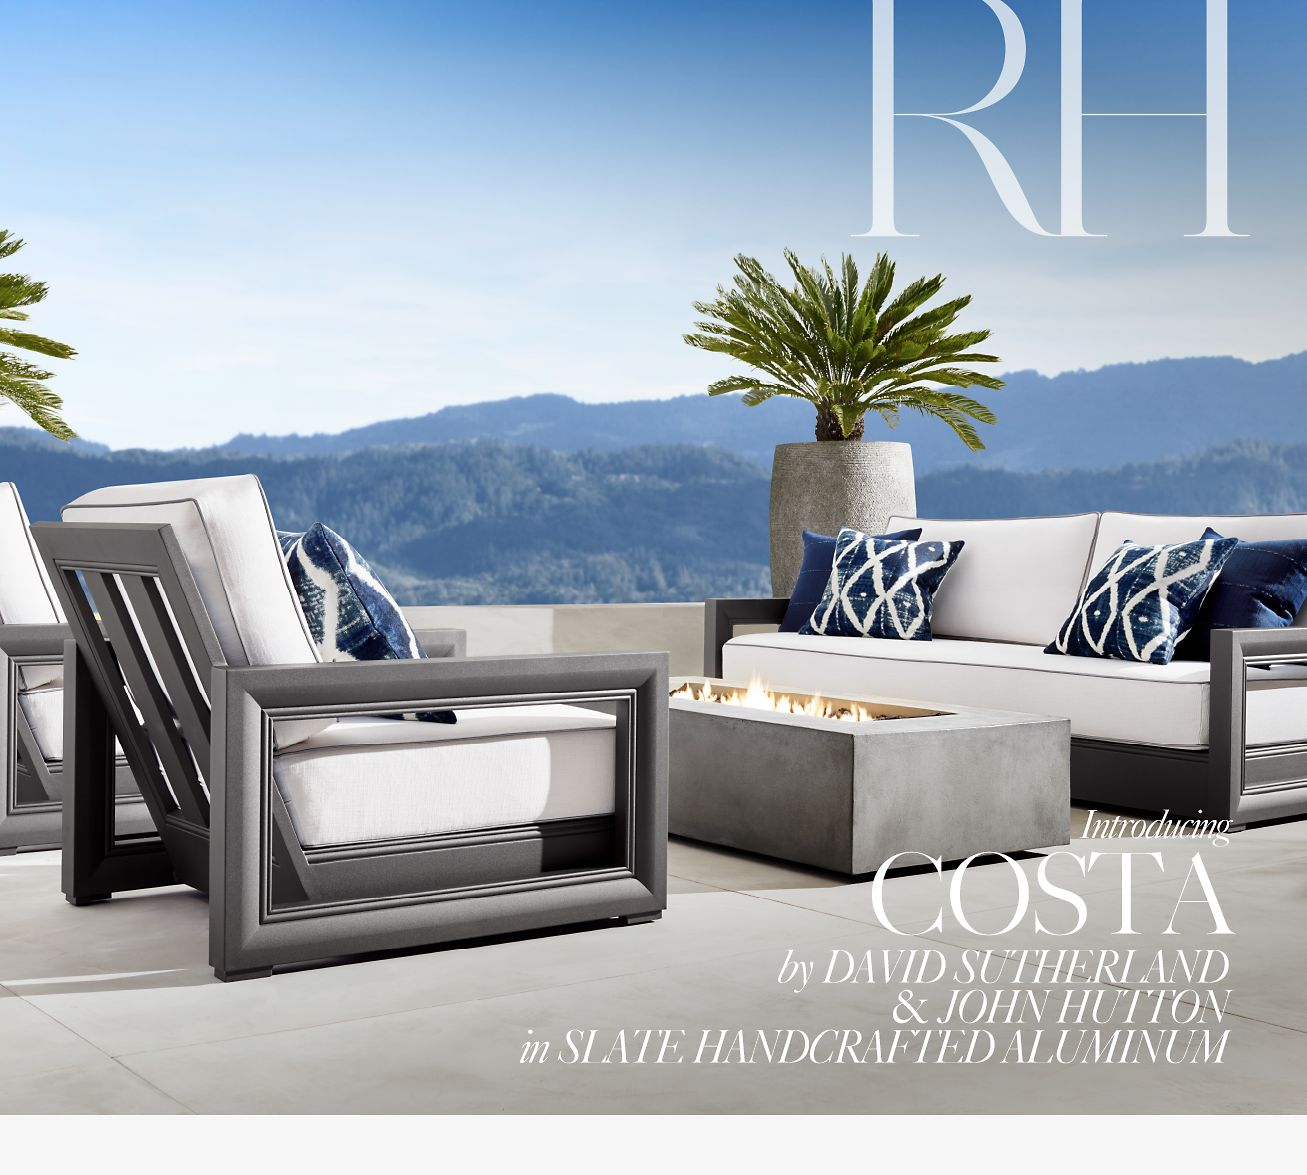 Restoration Hardware Introducing The Costa Outdoor